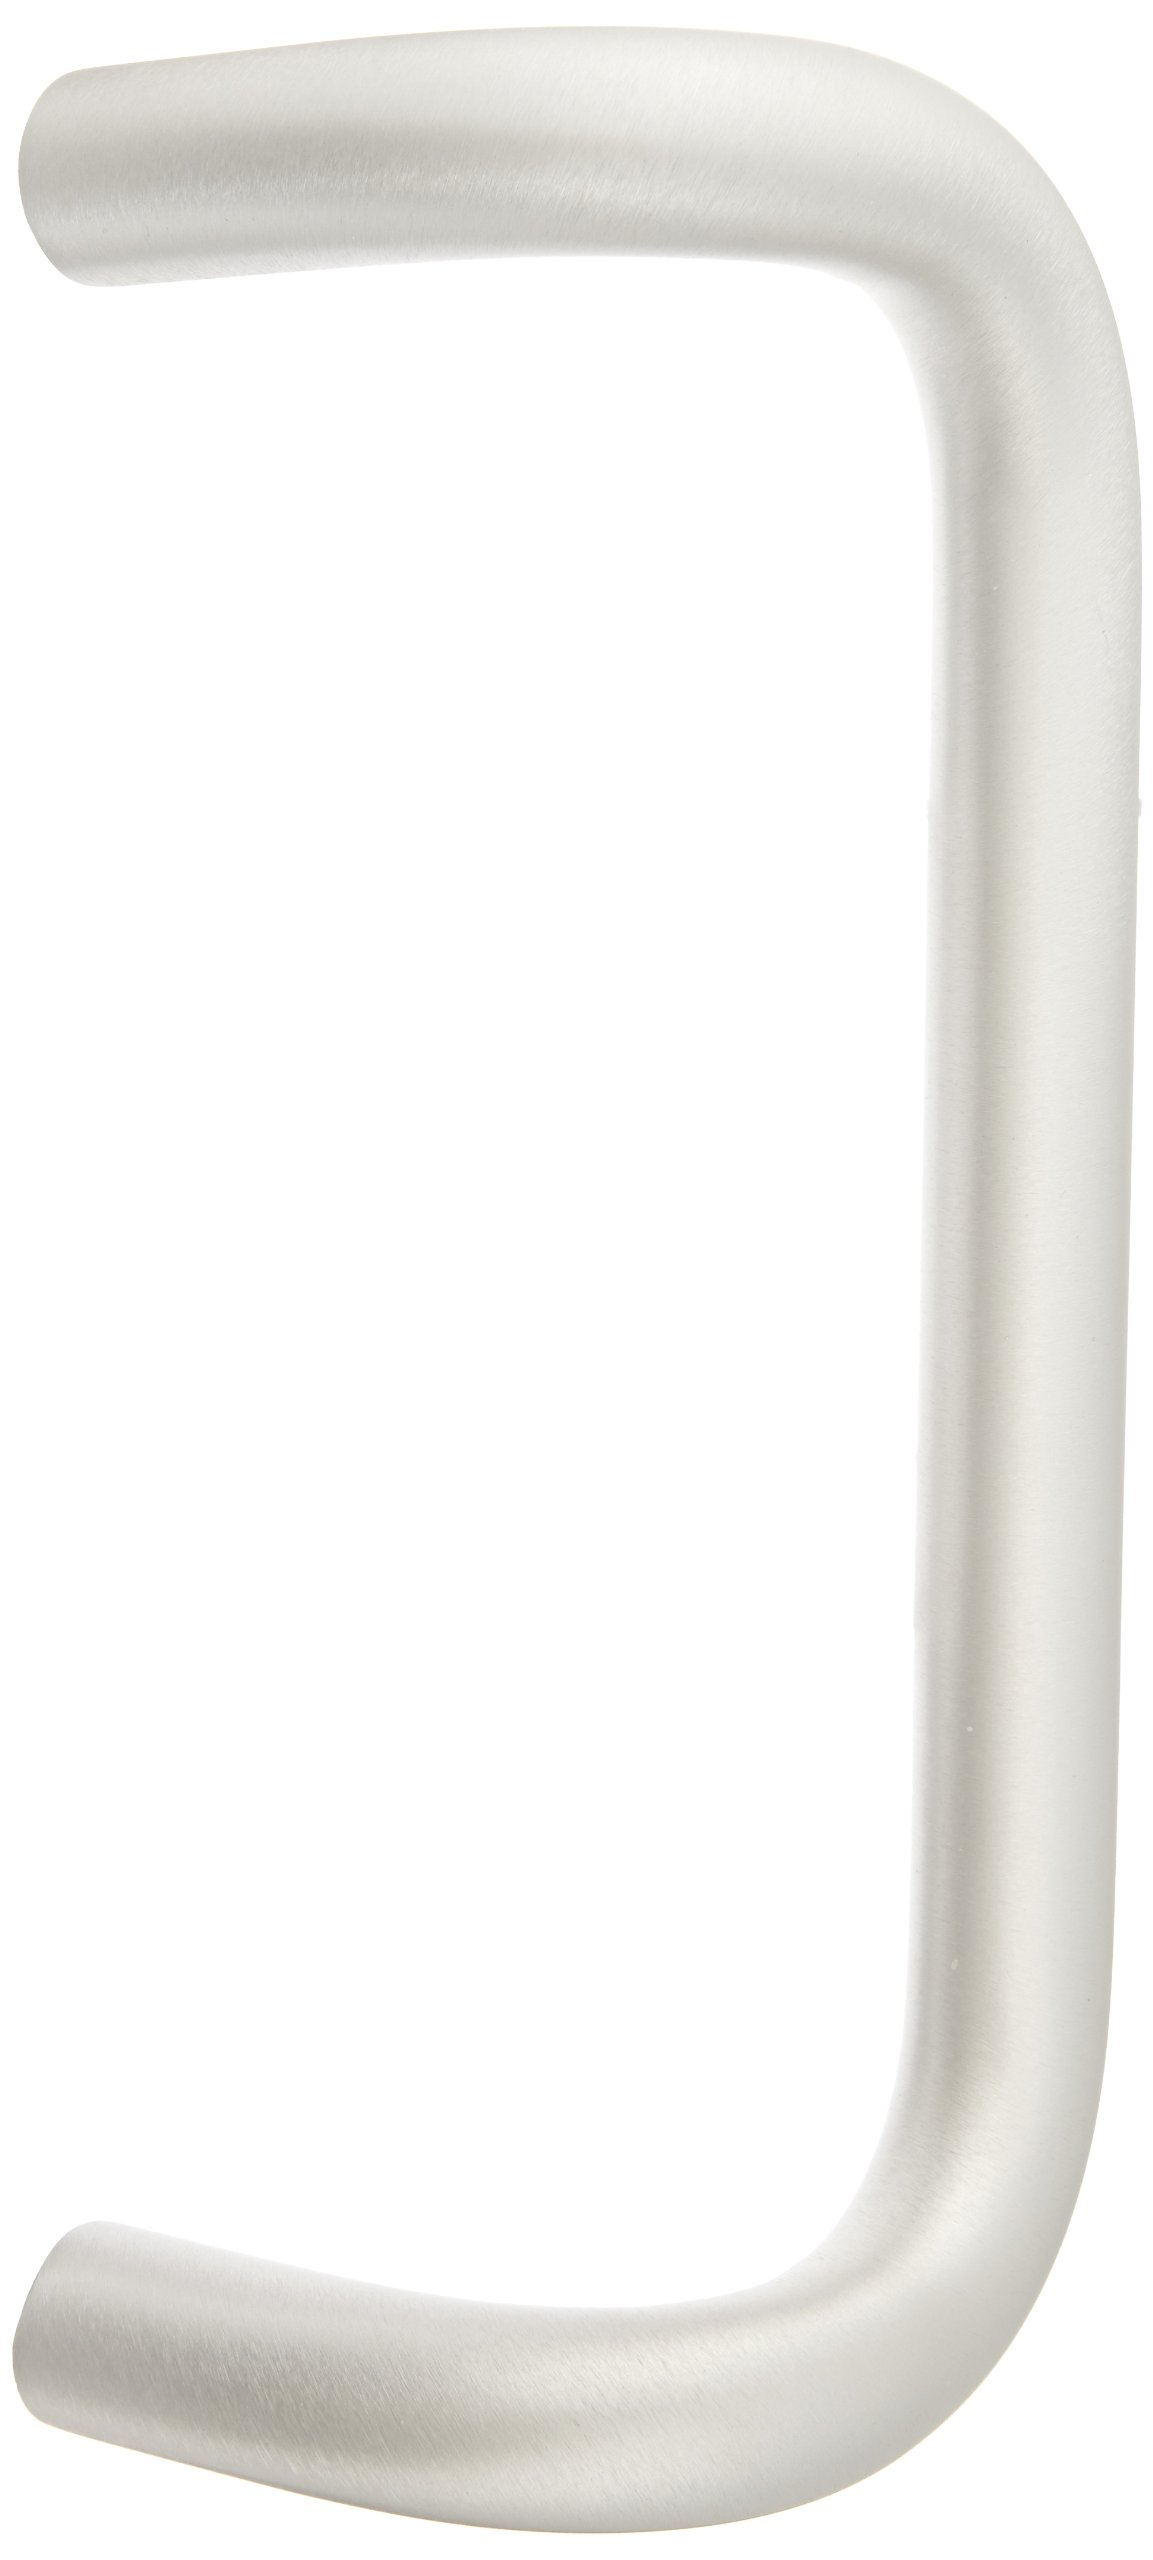 Rockwood BF157C17.28 Aluminum 90-Degree Offset Door Pull, 1'' Diameter x 10'' Center-to-Center, Concealed Mounting for 1-3/4'' Door, Clear Anodized Finish